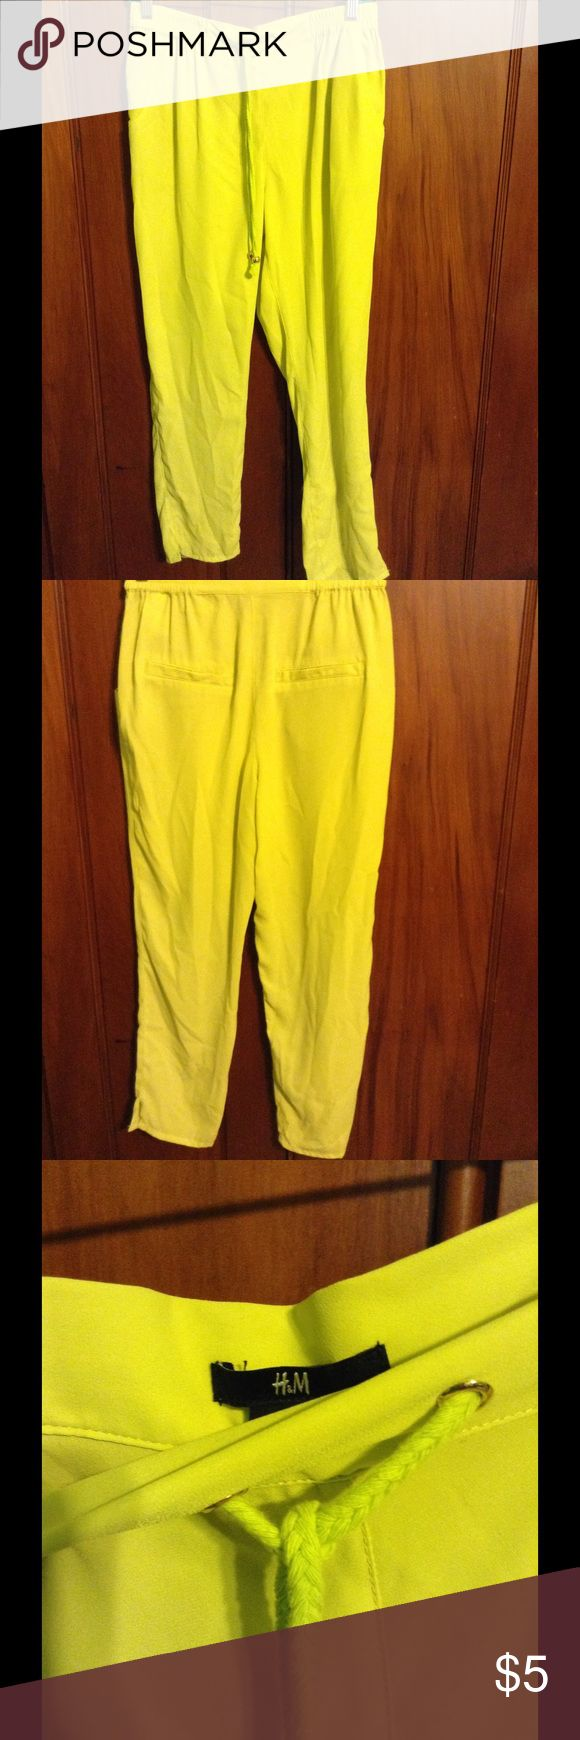 Bright Neon Color Pants by H&M Cute neon pant by H&M! Small ink stain on pant leg H&M Pants Trousers